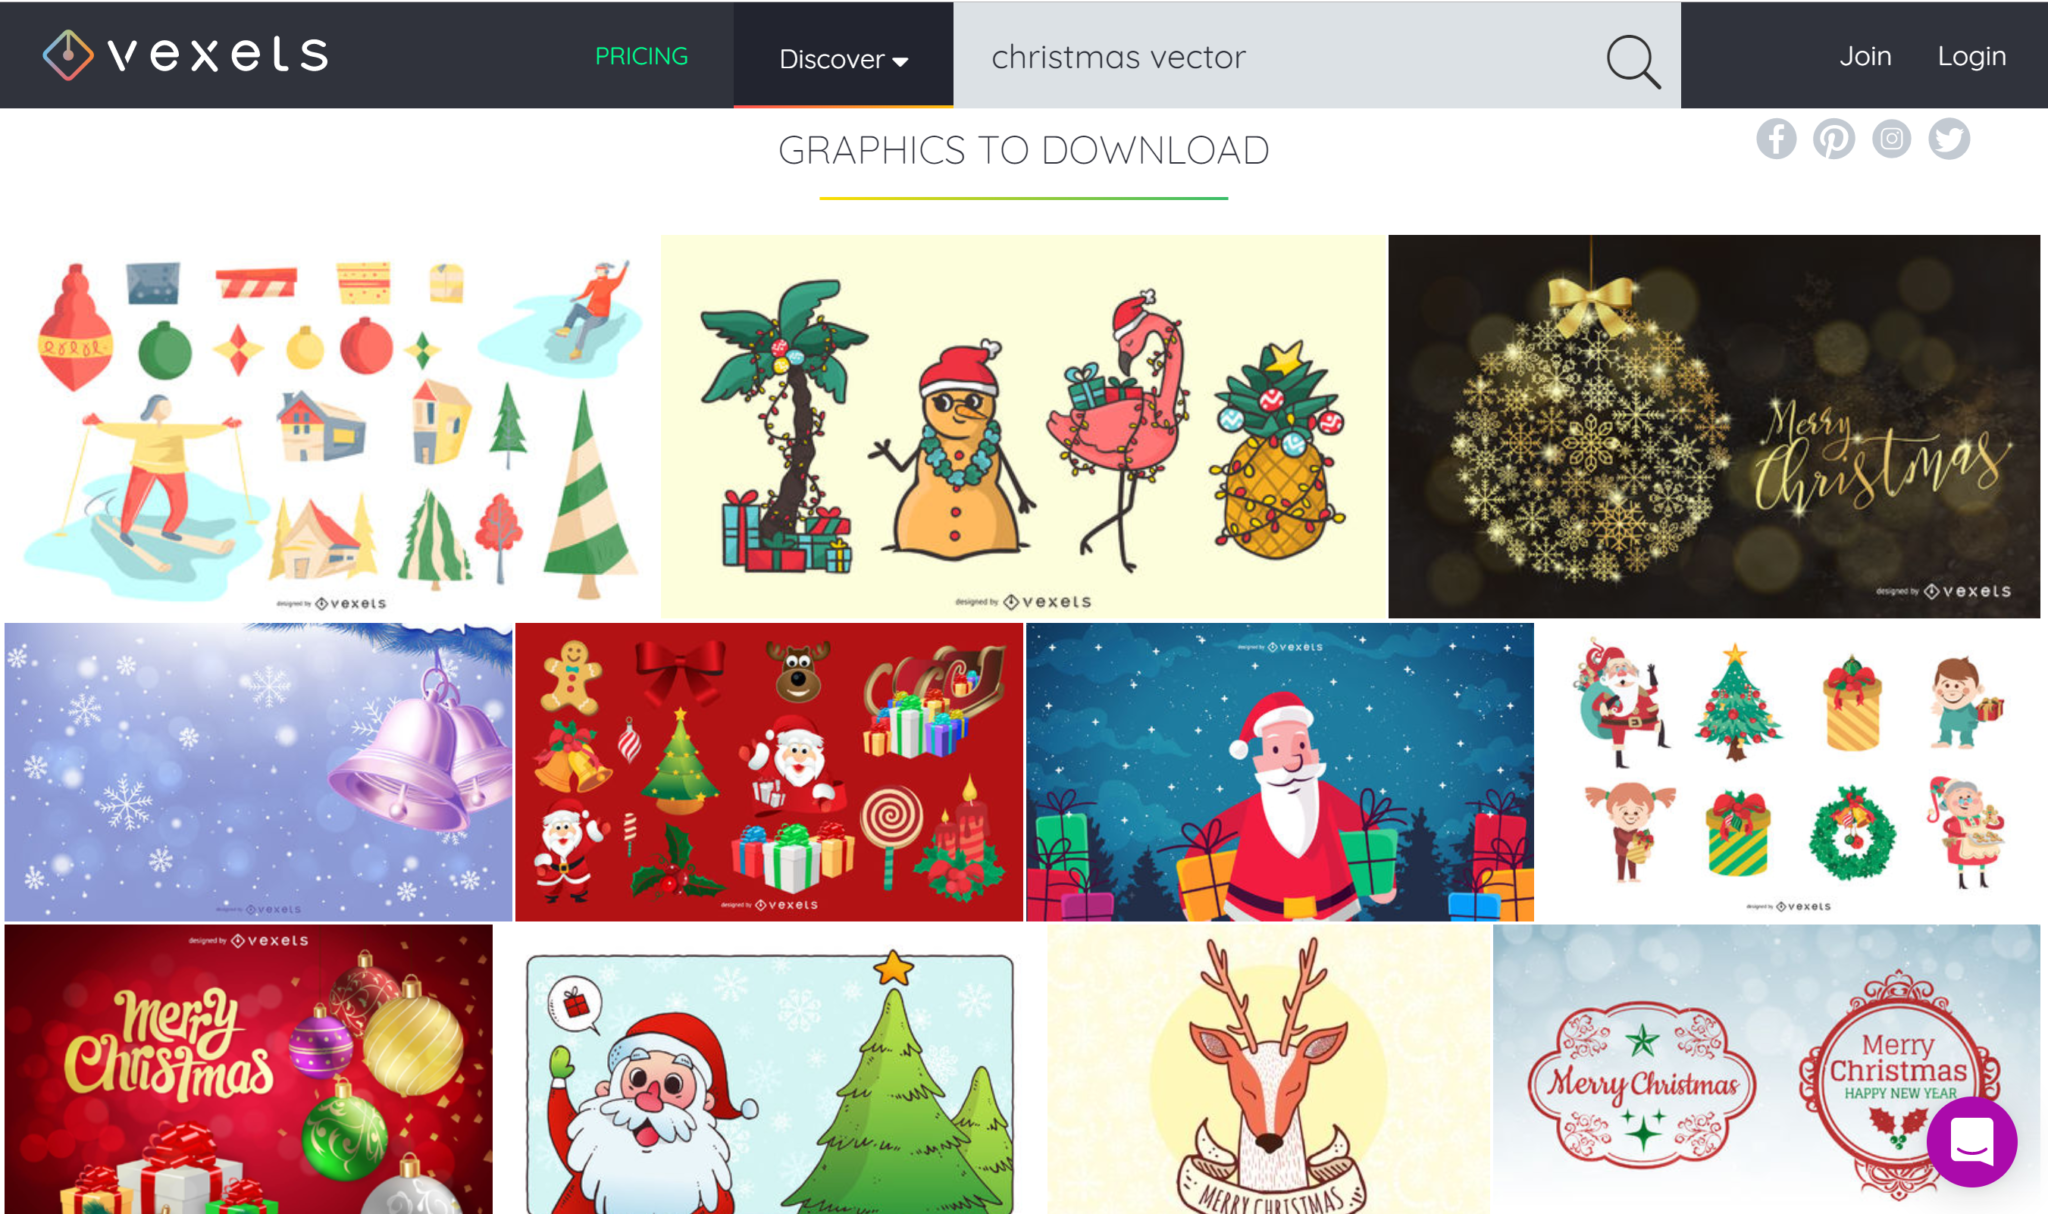 free vectors for holidays and christmas